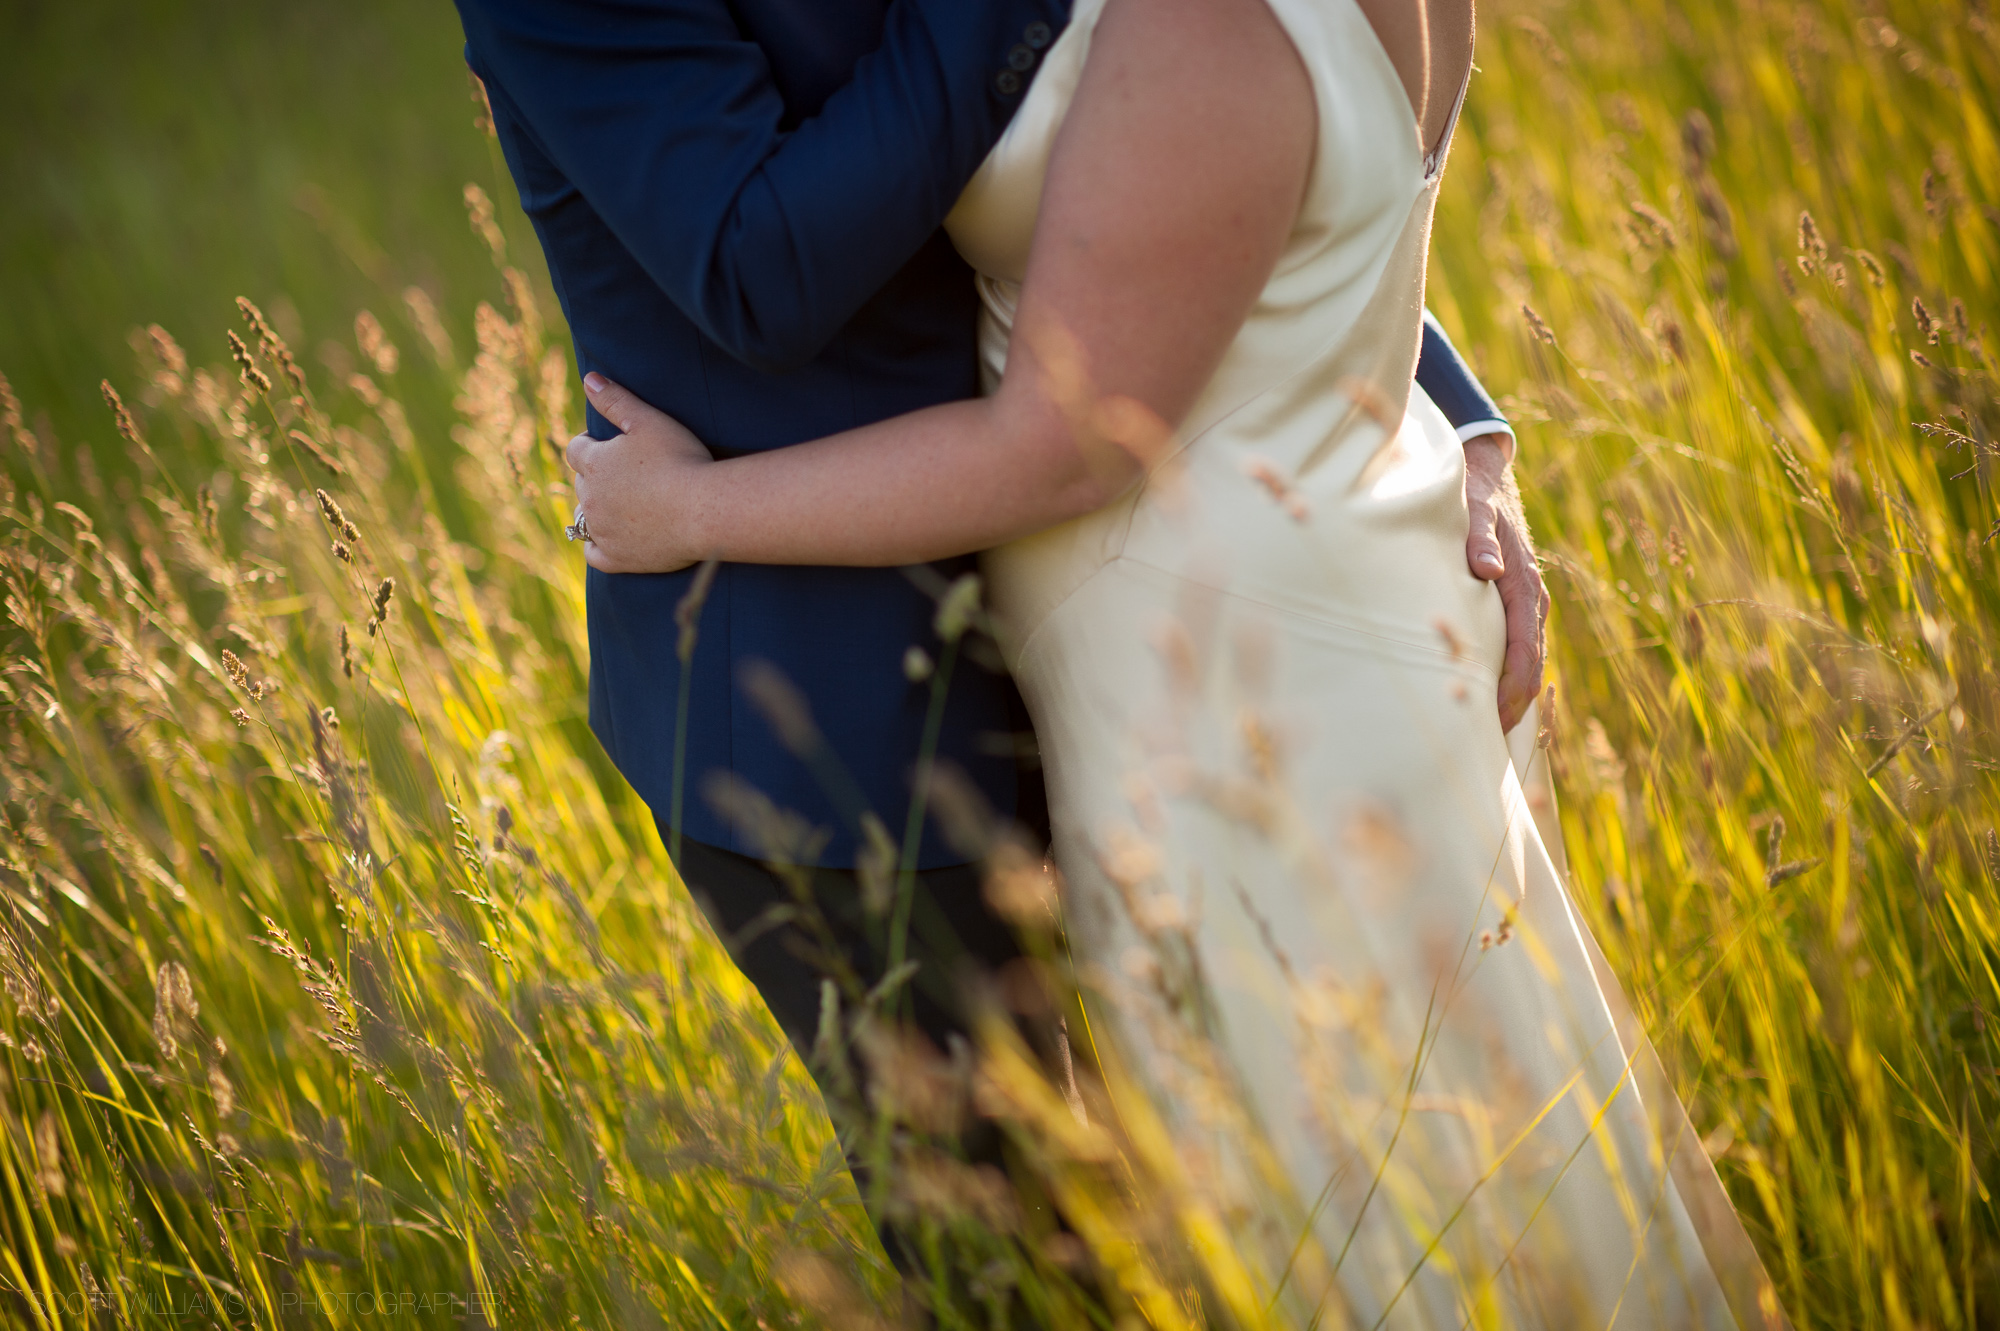 ontario-country-farm-wedding-rustic-014.jpg